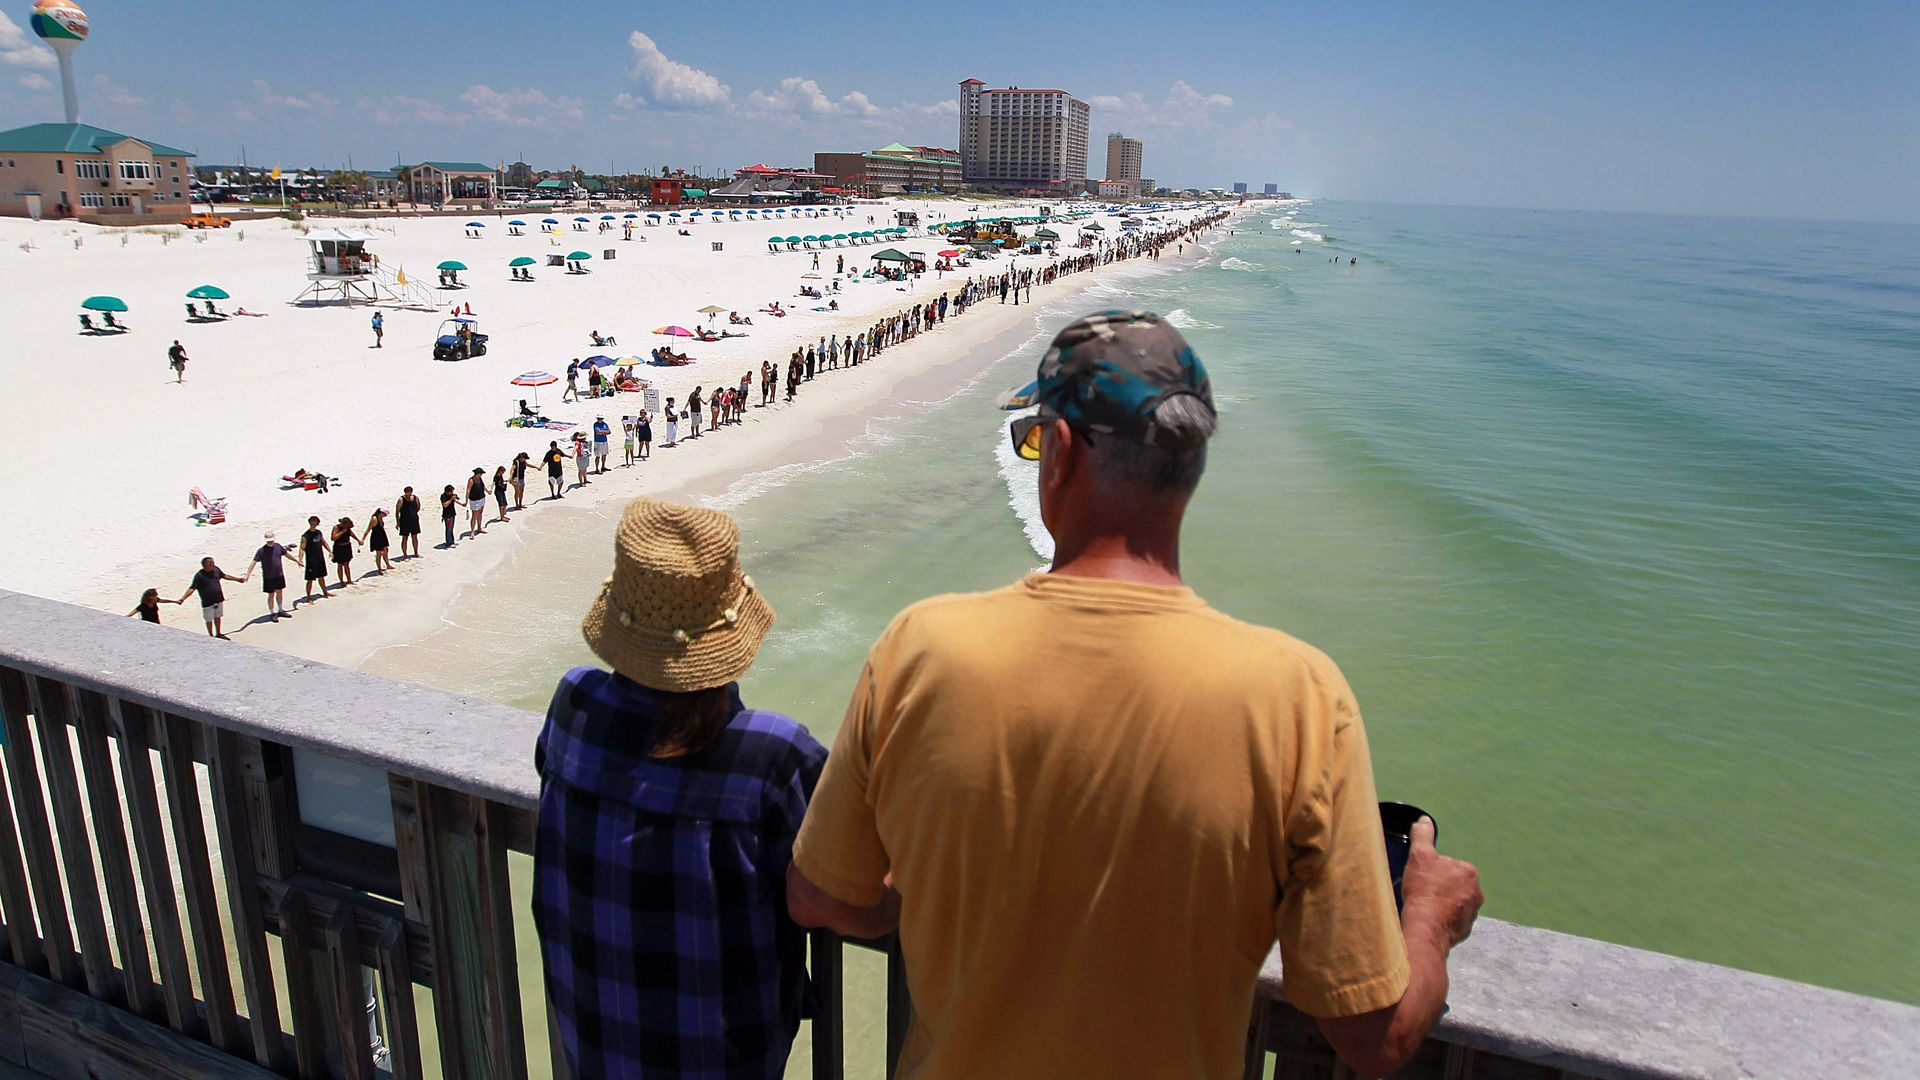 Line of people stretches across Pensacola beach in the June 2010 Hands Across the Sand protest against the Deepwater Horizon oil spill